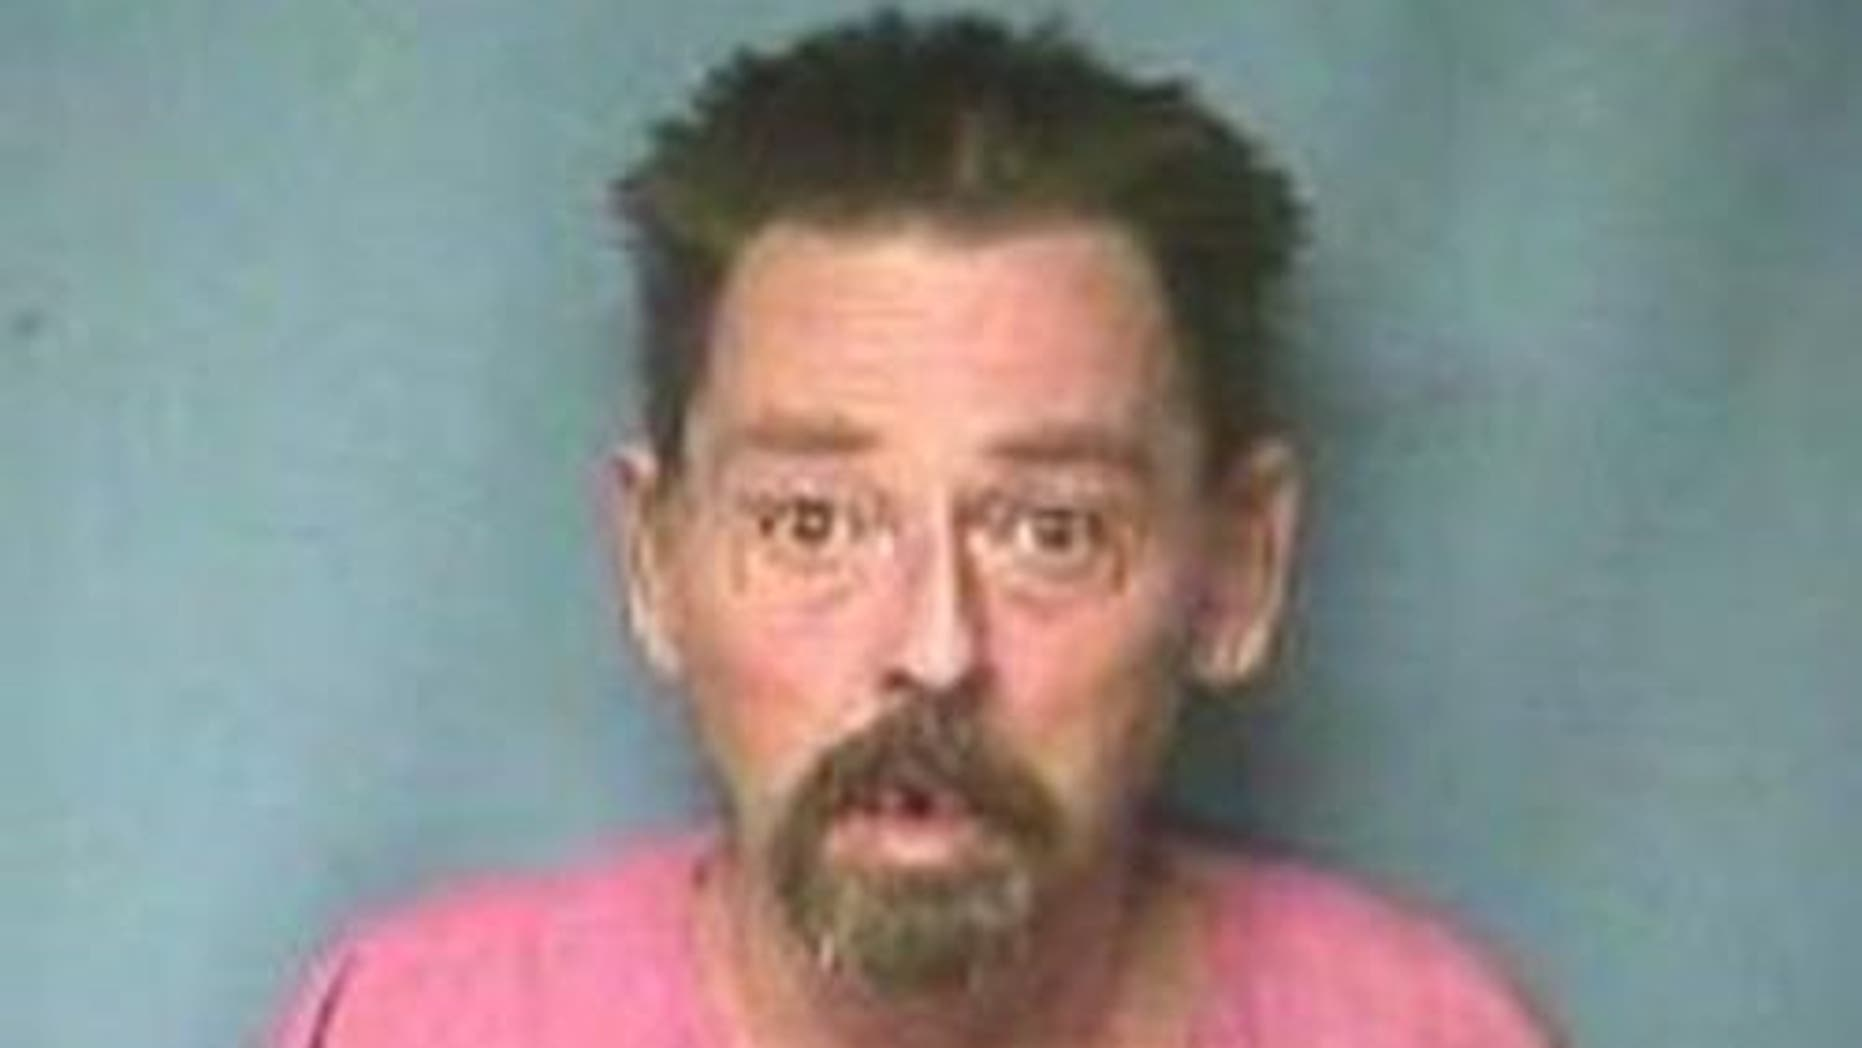 Tony Thomas, 58, reportedly admitted to investigators that he stabbed his wife after she changed the TV channel from football.